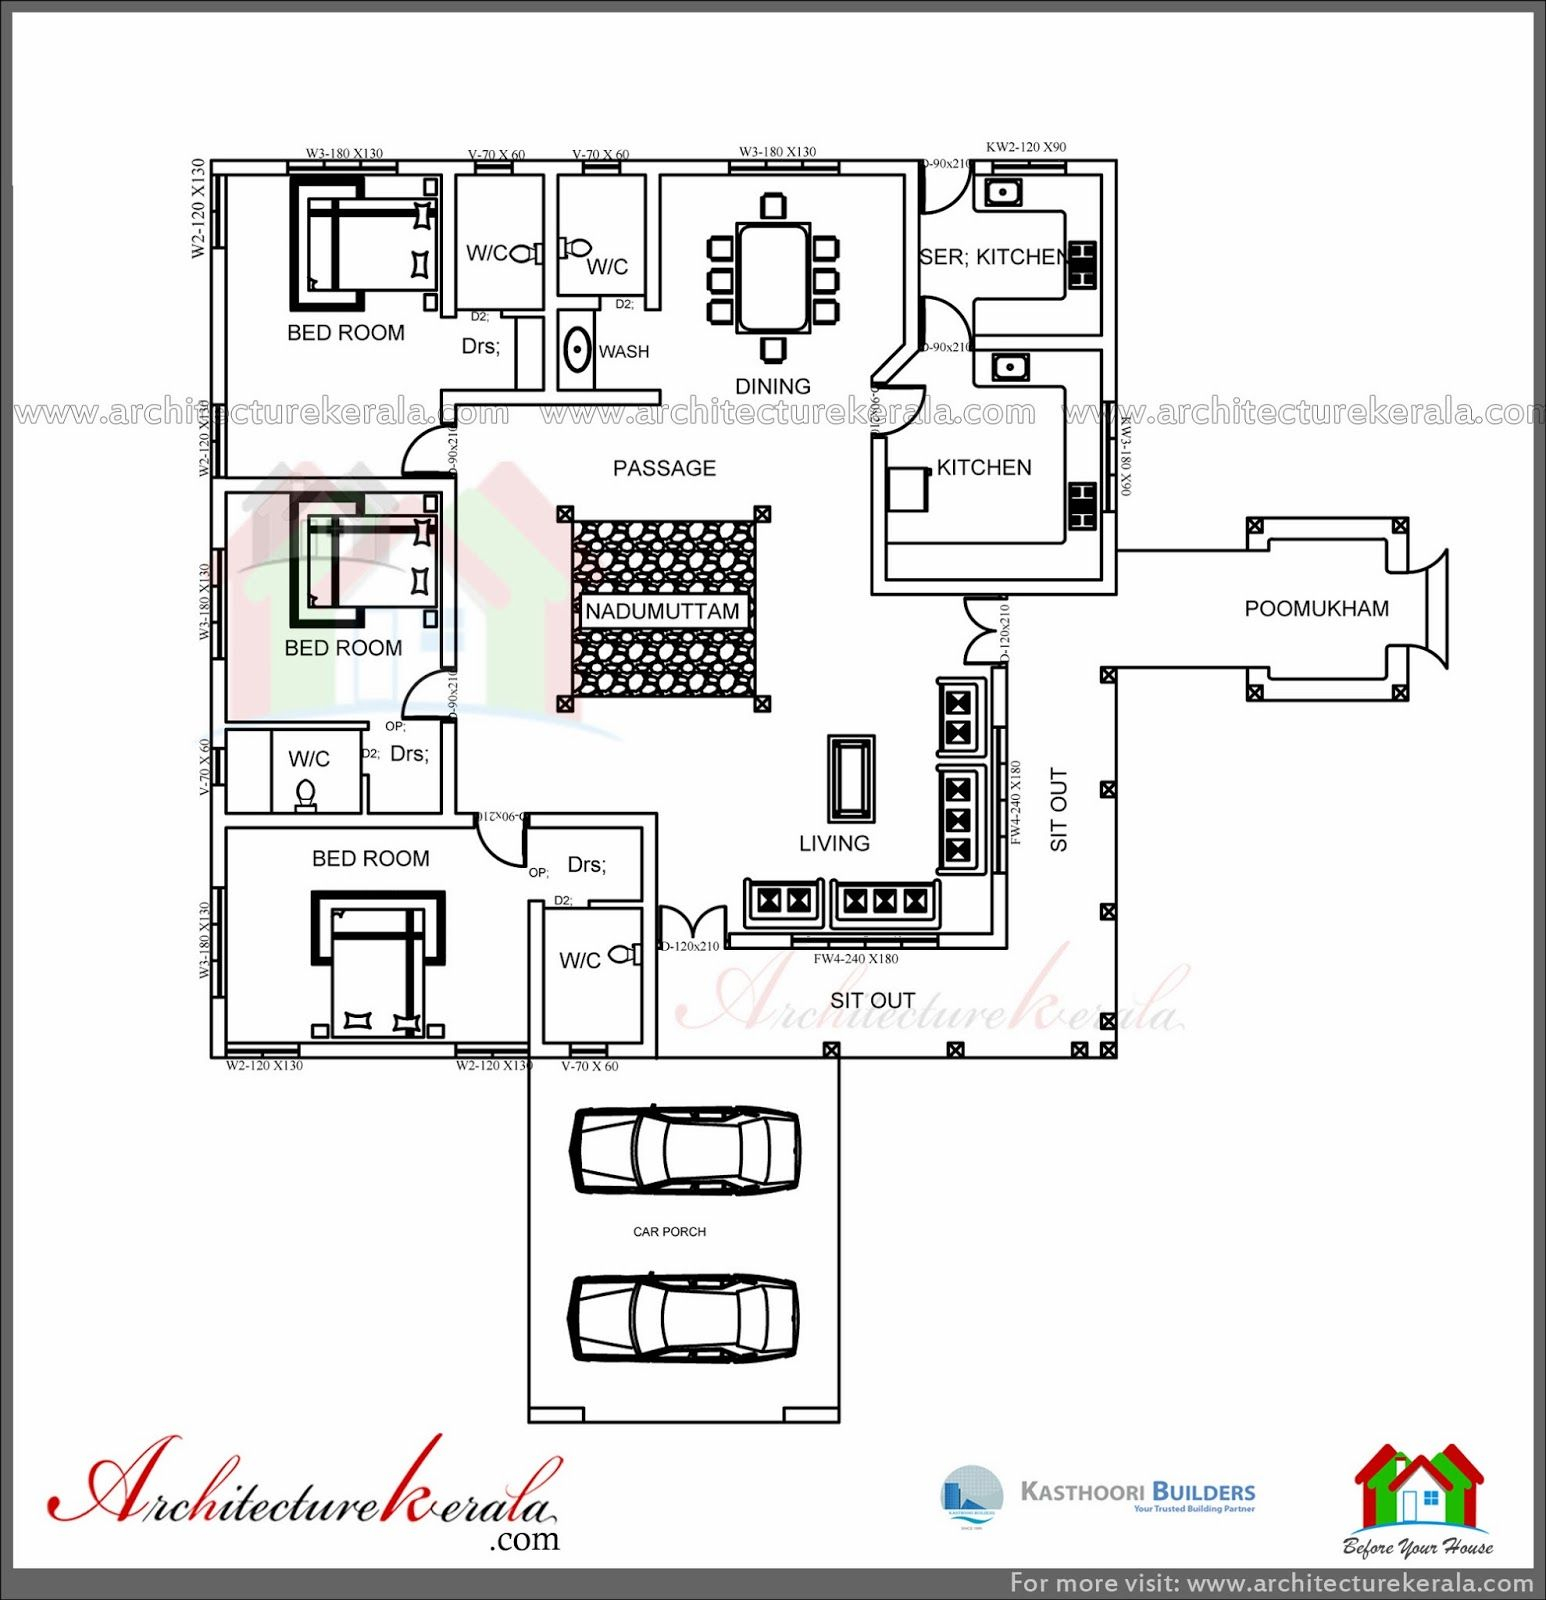 Fancy Architecture Kerala: Traditional House Plan With Nadumuttam And pertaining to Inspirational Kerala Traditional House Plans With Photos